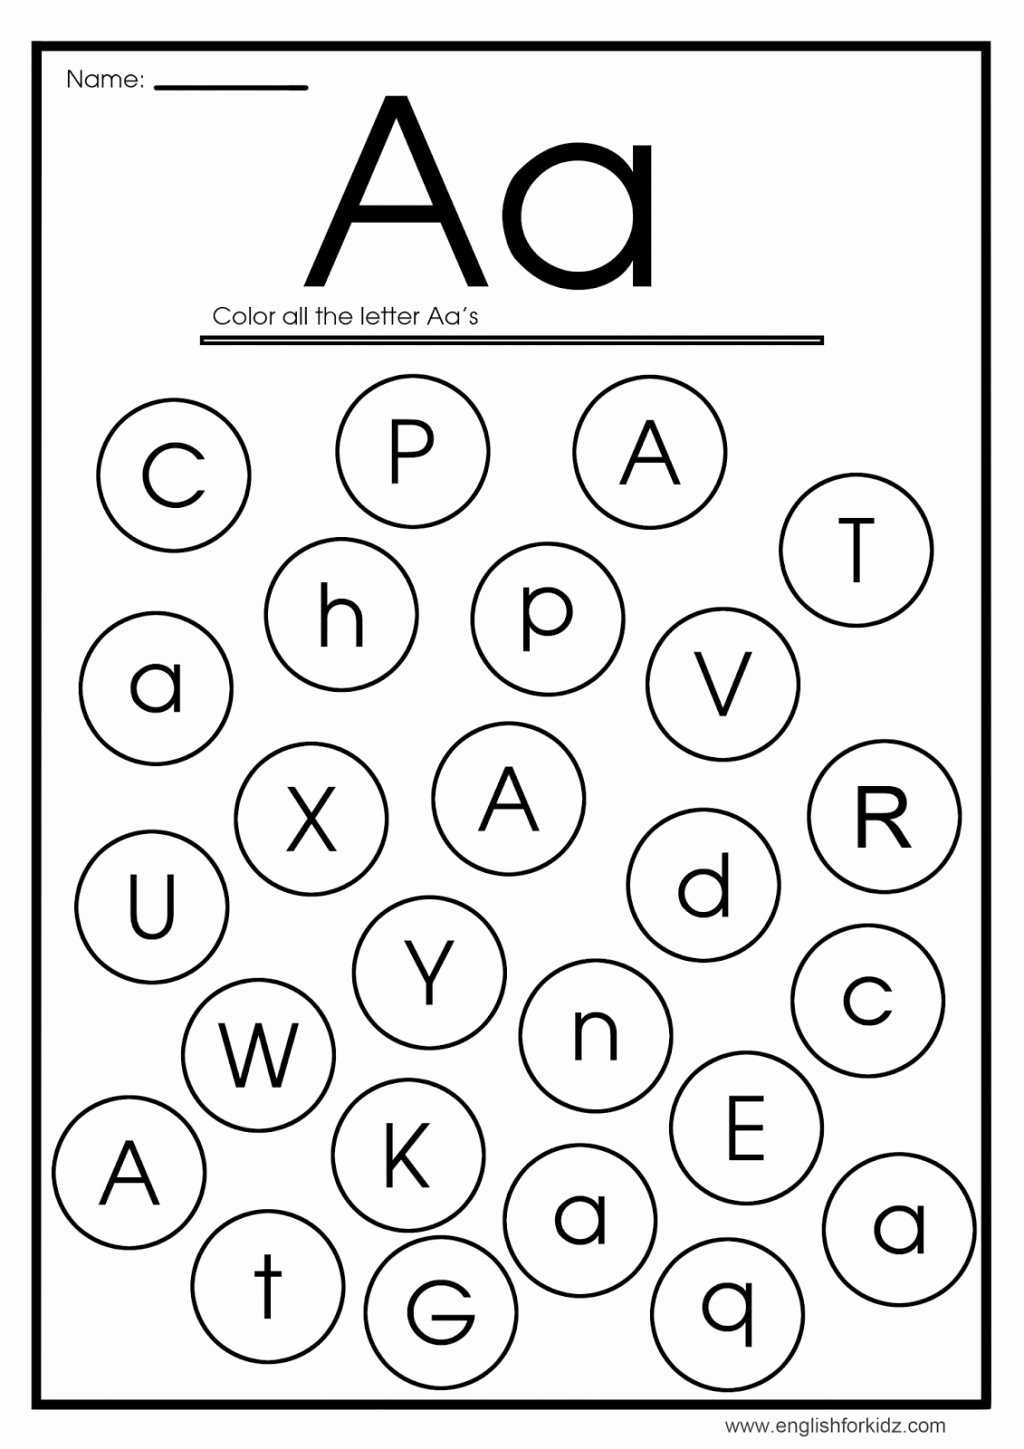 Worksheets for Preschoolers On Letters Awesome Worksheet Preschool Letter Worksheets Worksheet Ideas Pdf